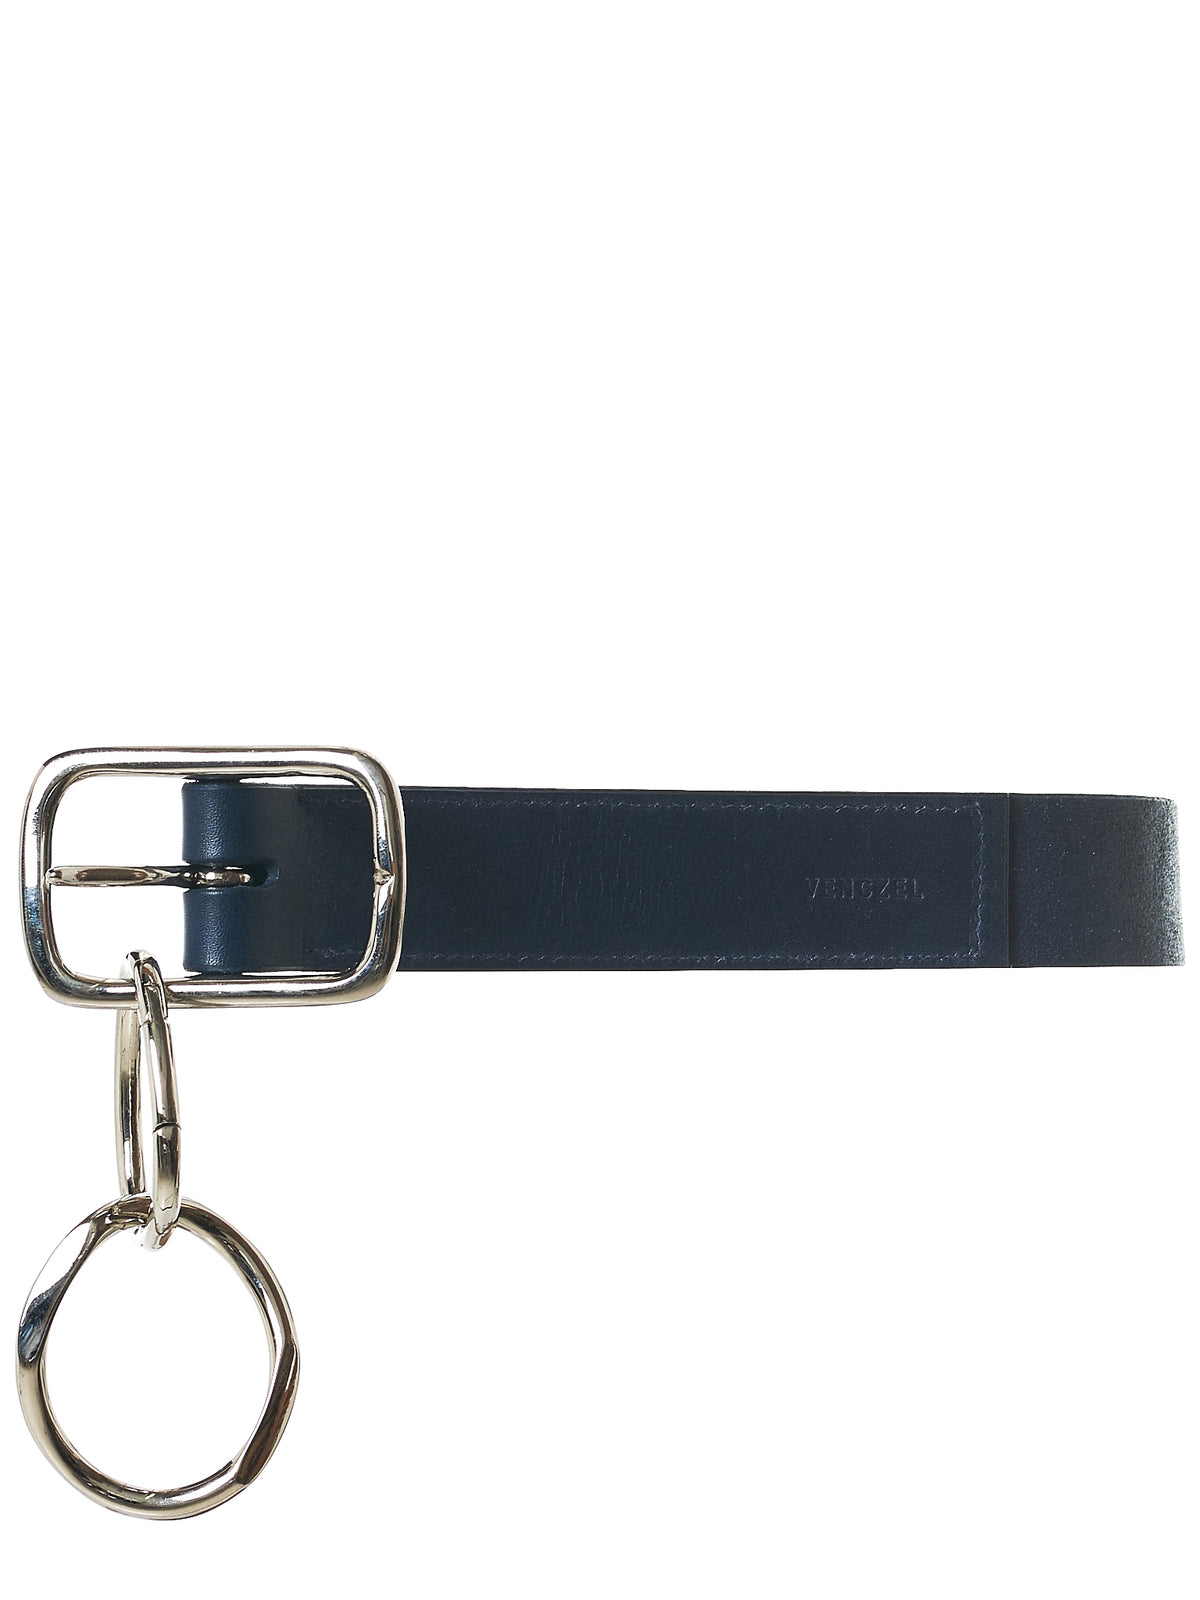 venczel leather belt - H.Lorenzo detail